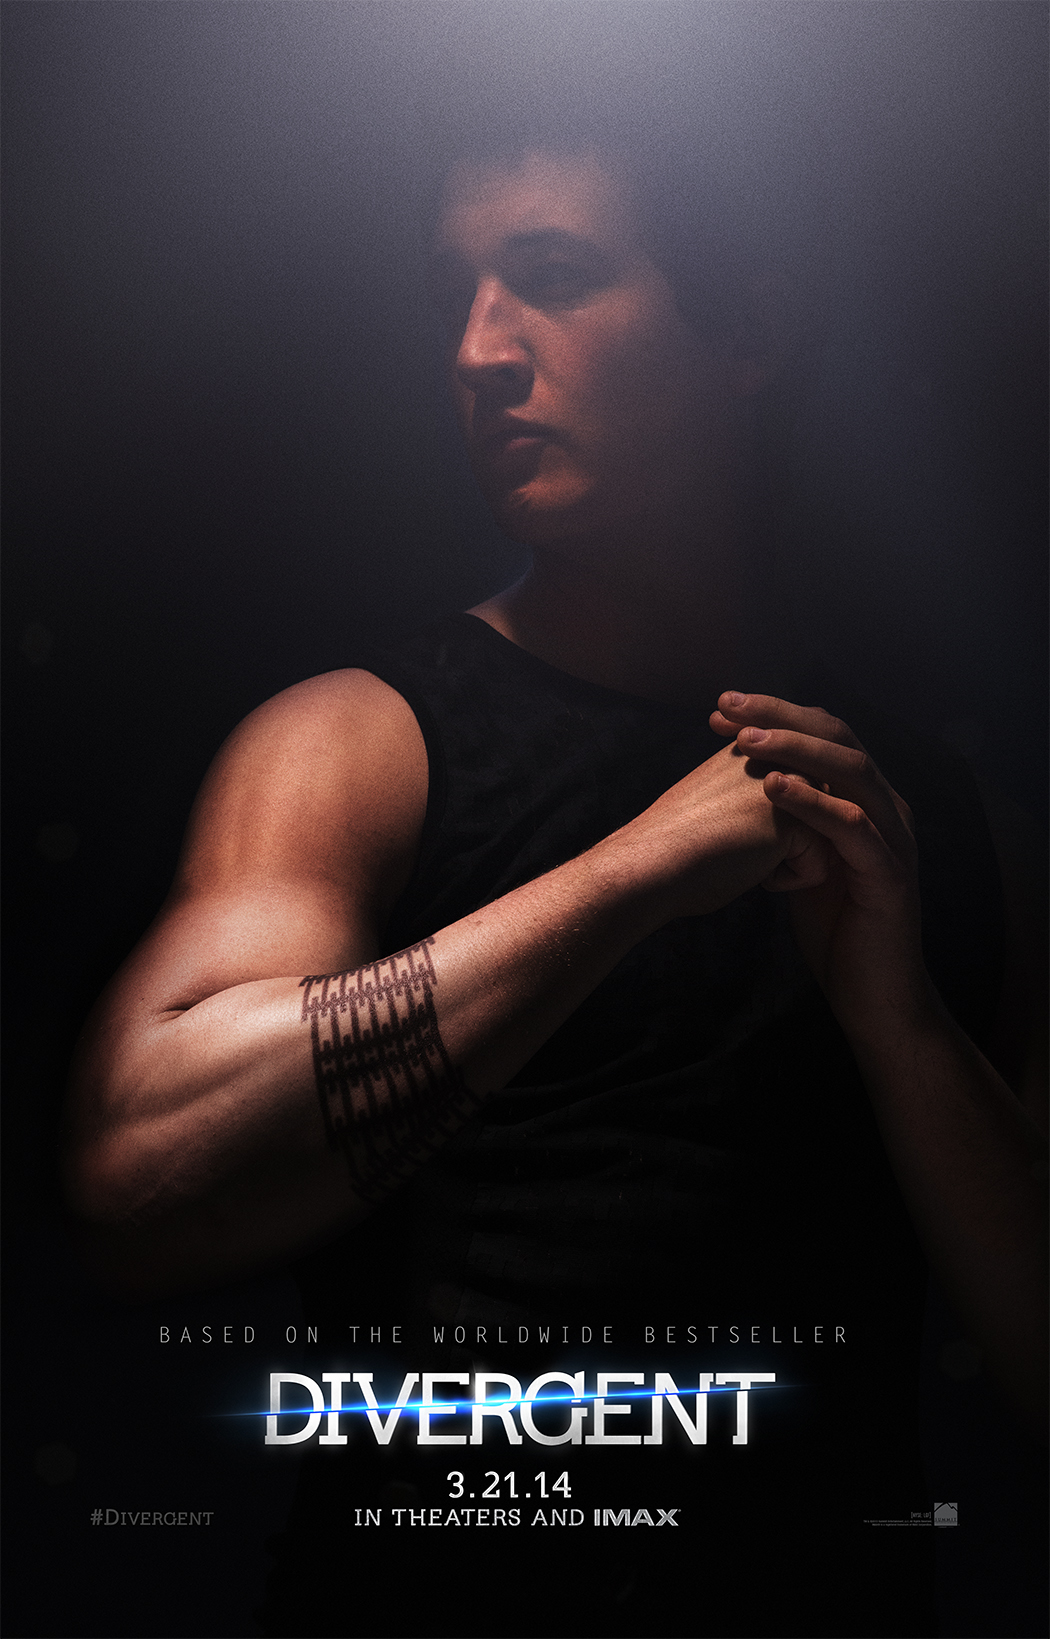 Divergent-Official Poster Banner PROMO CHAR XLG-11NOVEMBRO2013-04